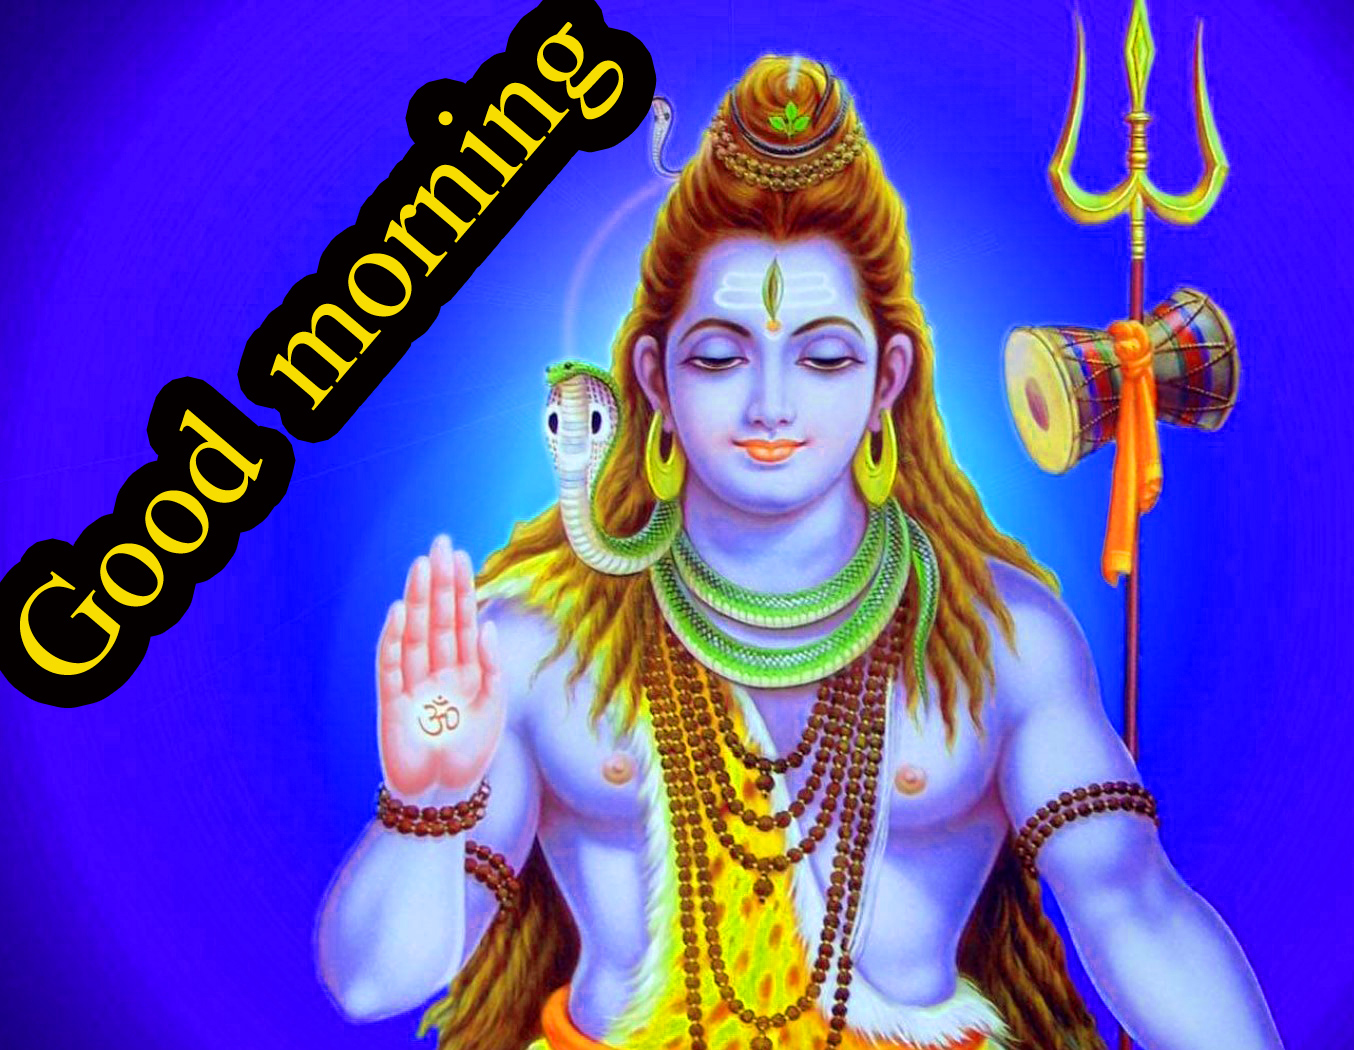 LORD SHIVA GOOD MORNING WISHES IMAGES WALLPAPER PICTURES FREE